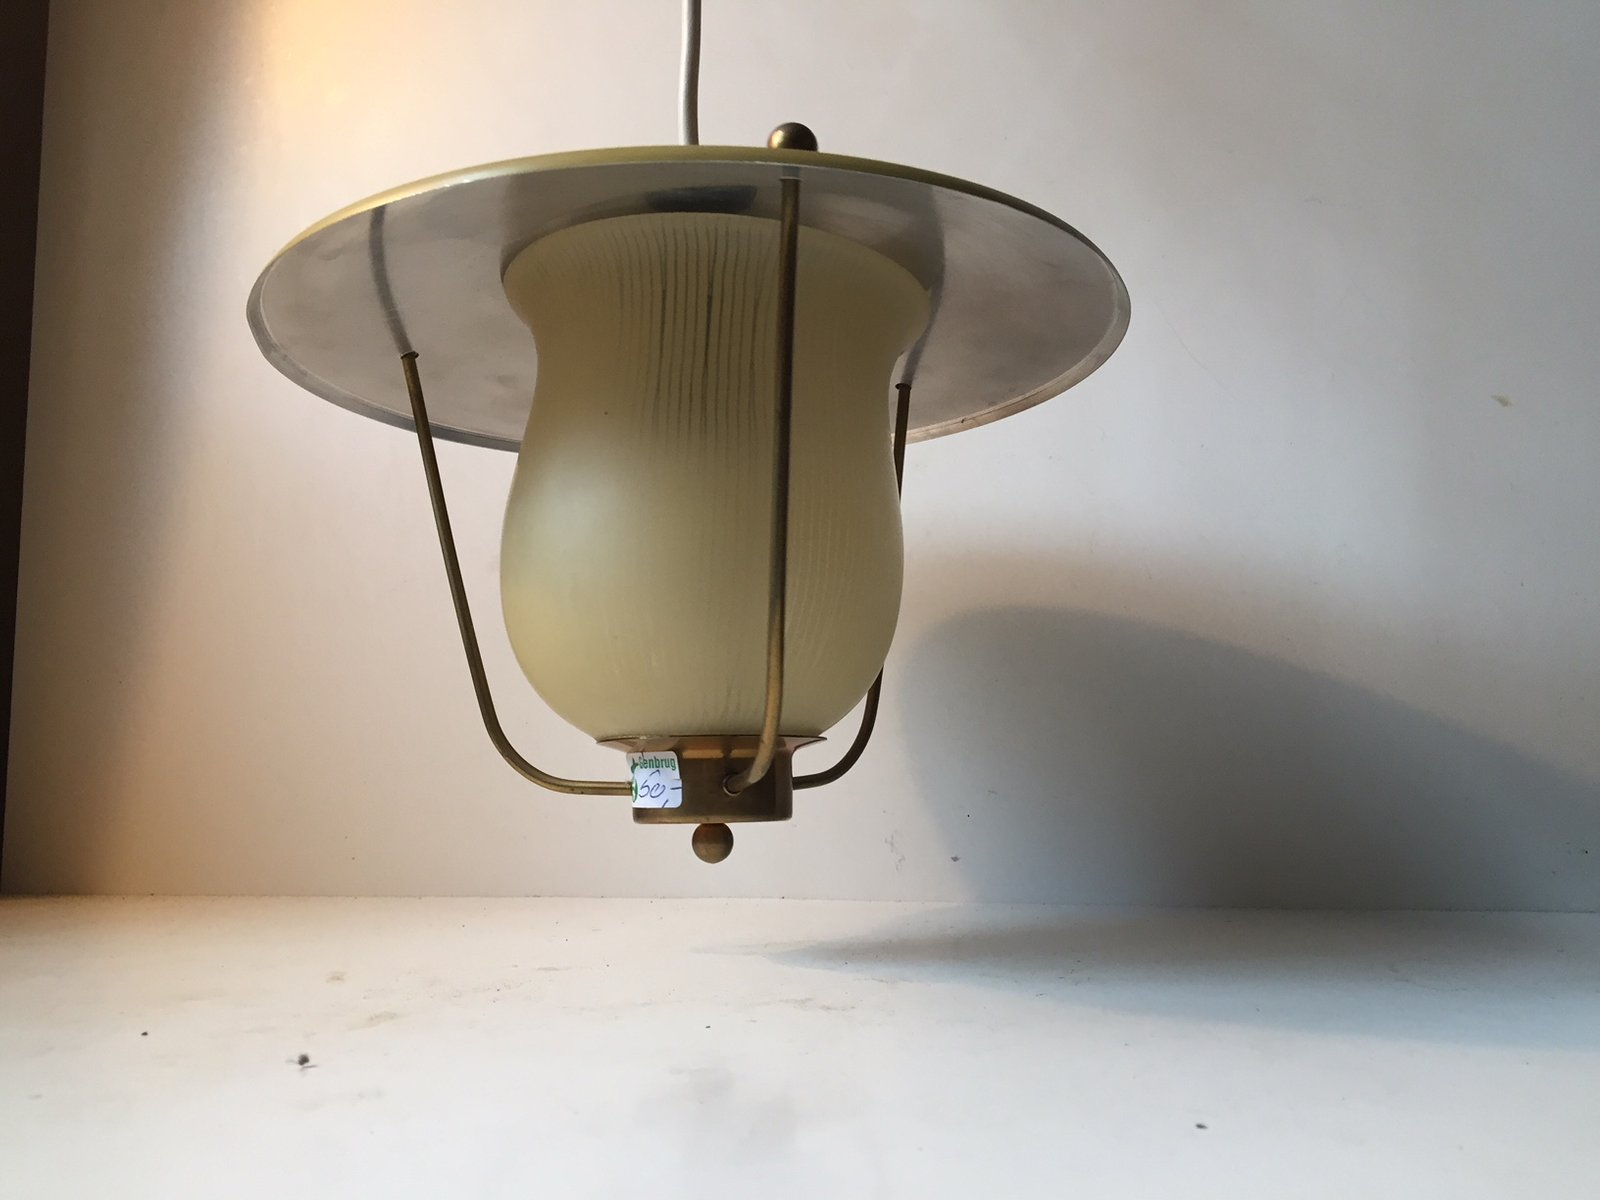 Danish funkis pendant lamp from lyfa 1940s for sale at pamono for Funkis sale